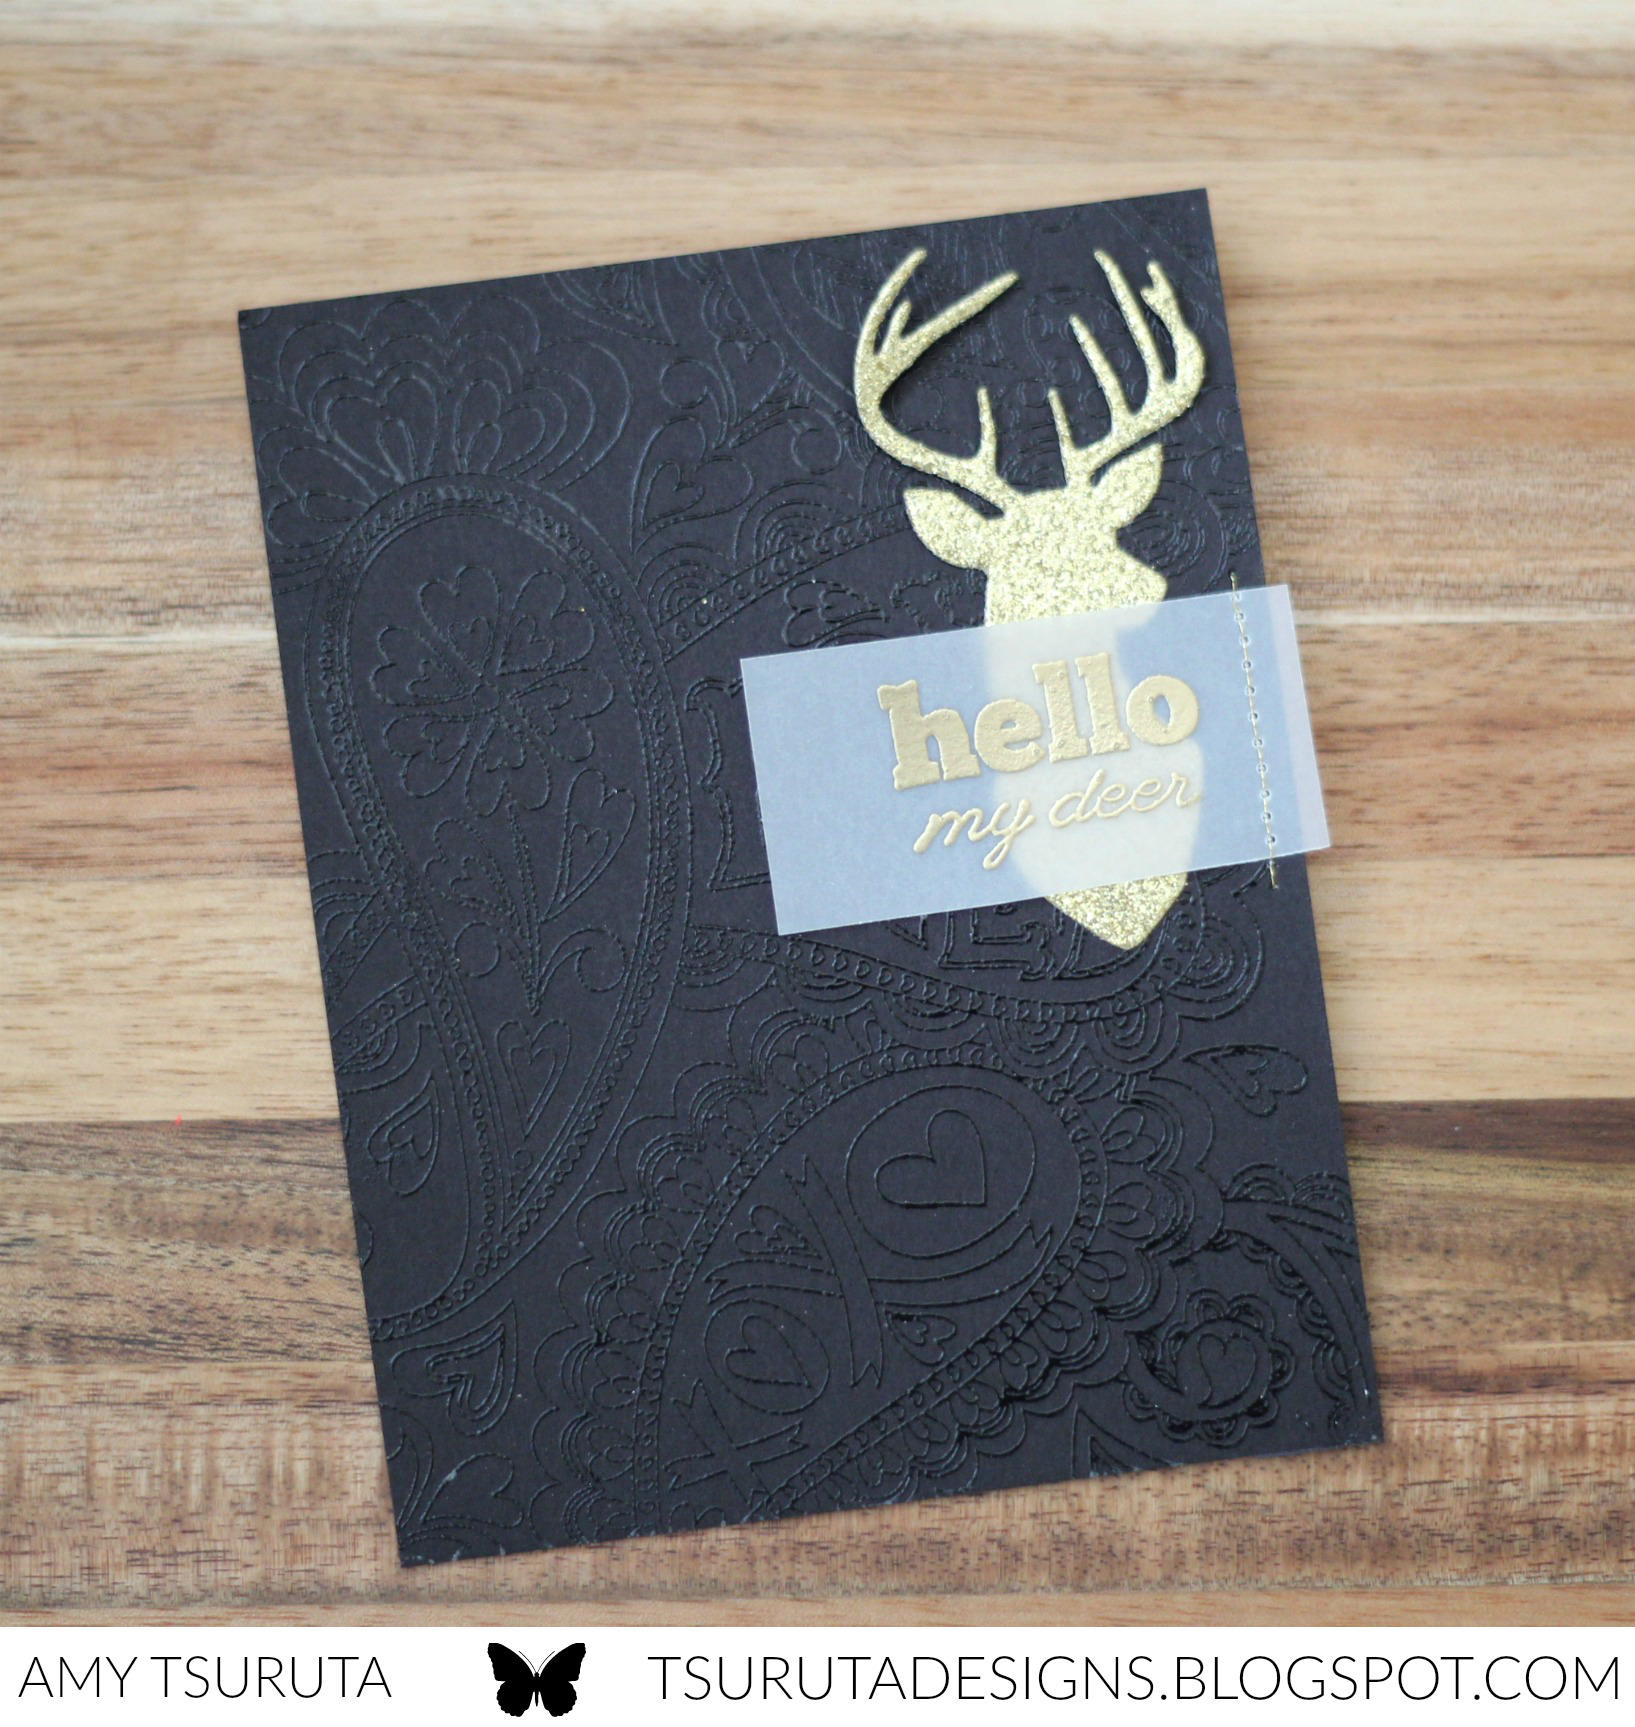 Hello my deer by Amy Tsuruta for Impress + Savvy  Stamps